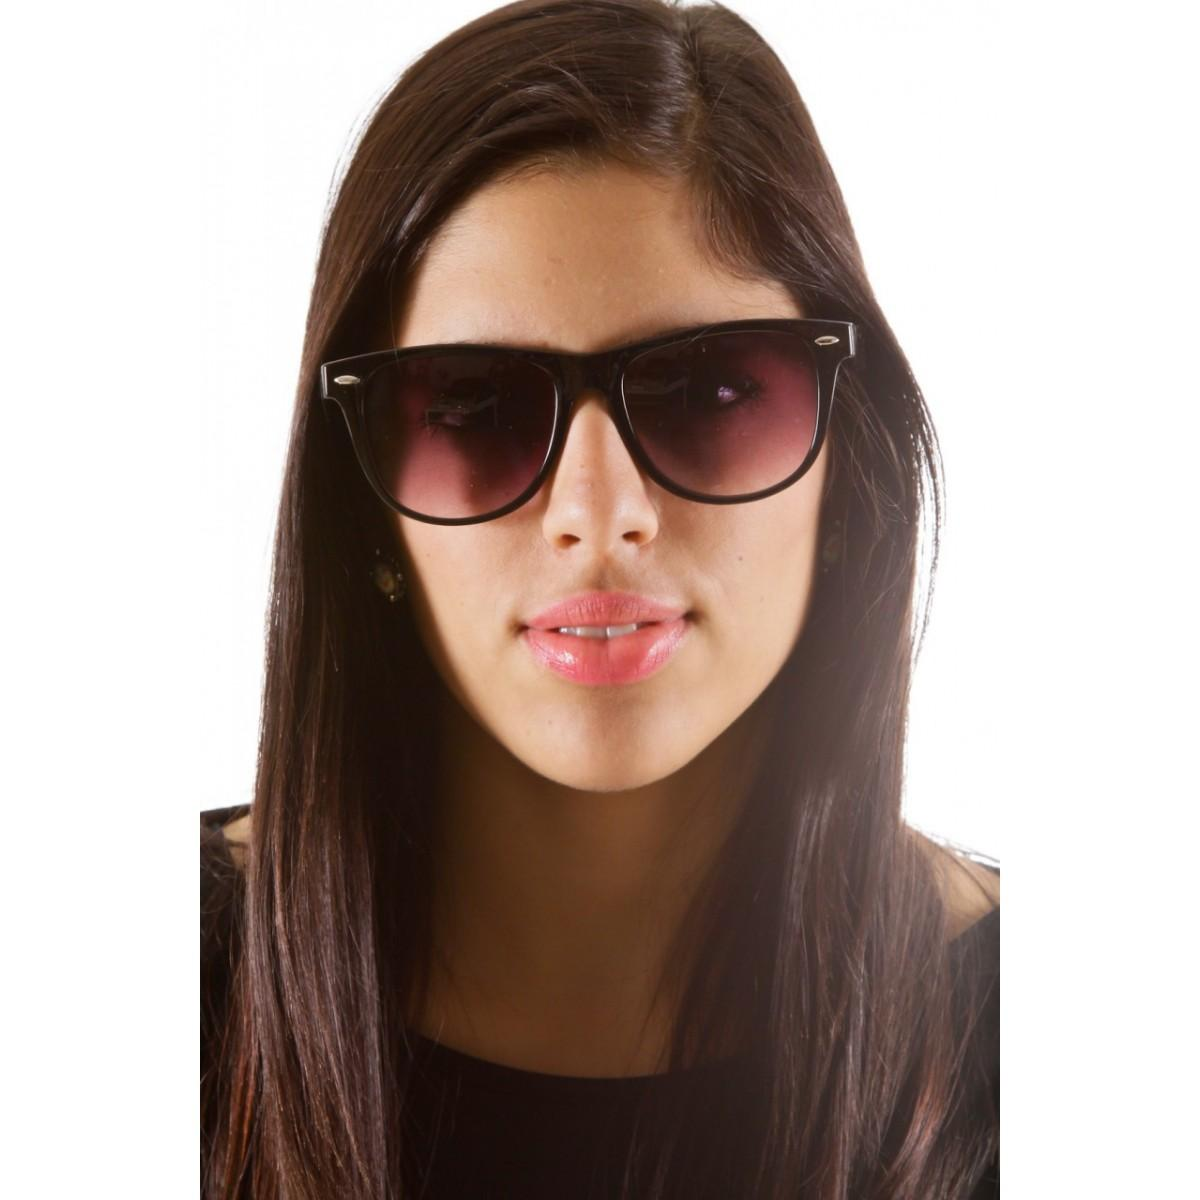 Tinted Sunglasses Tinted Sunglasses Question And Answers